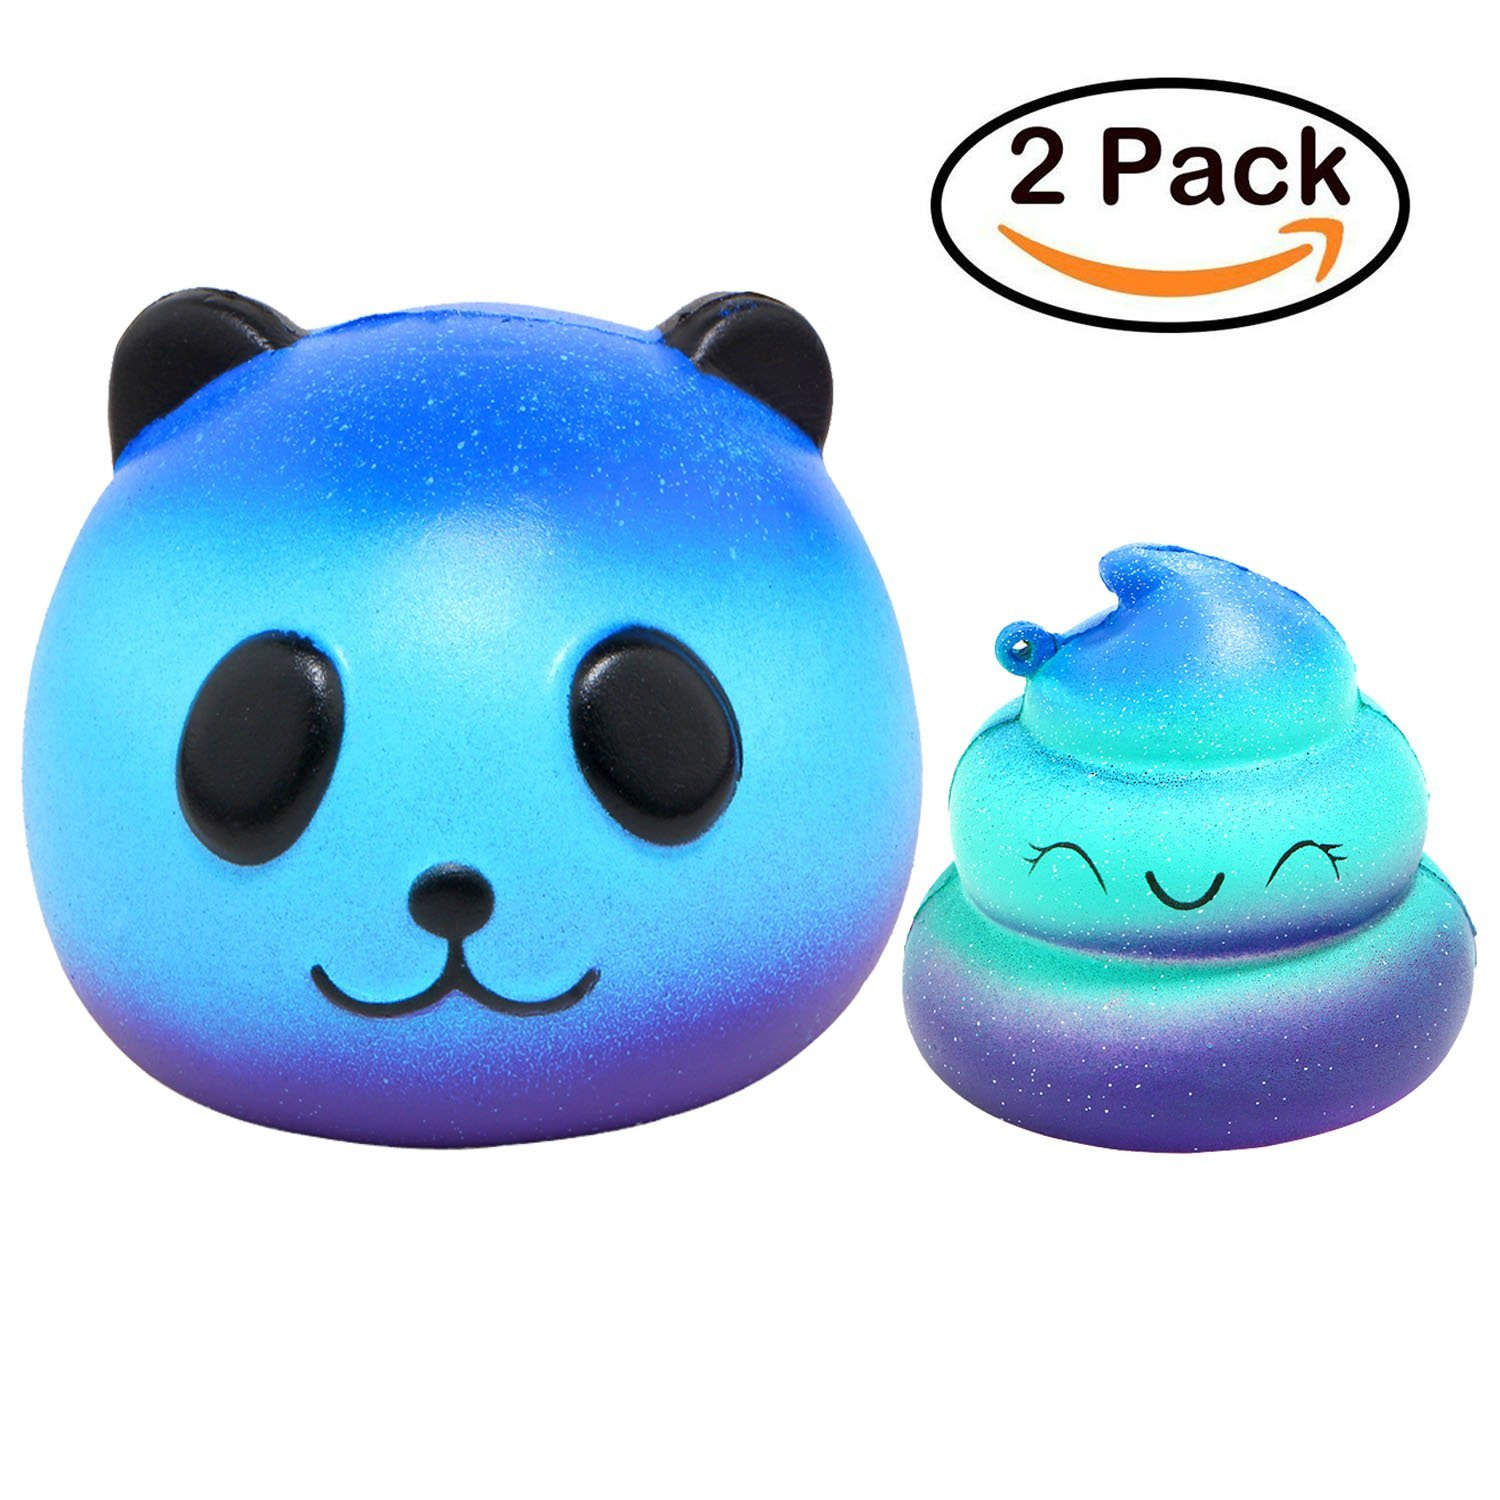 Galaxy Jumbo Squishy Stress Relief Toys-4 Pack